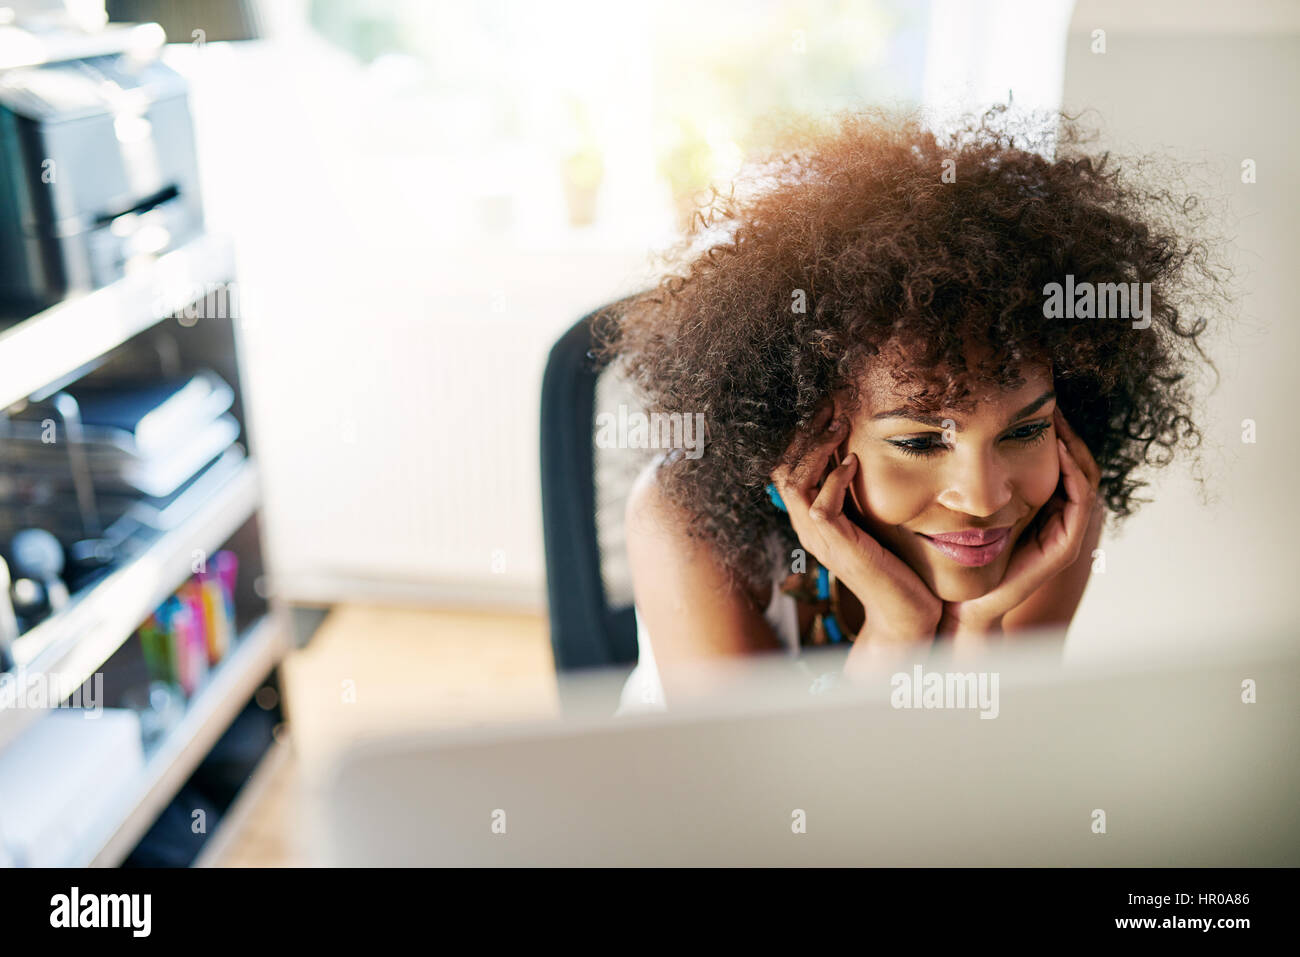 Young pretty afro-american woman looking at desk-top and smiling on blurred inside background. - Stock Image